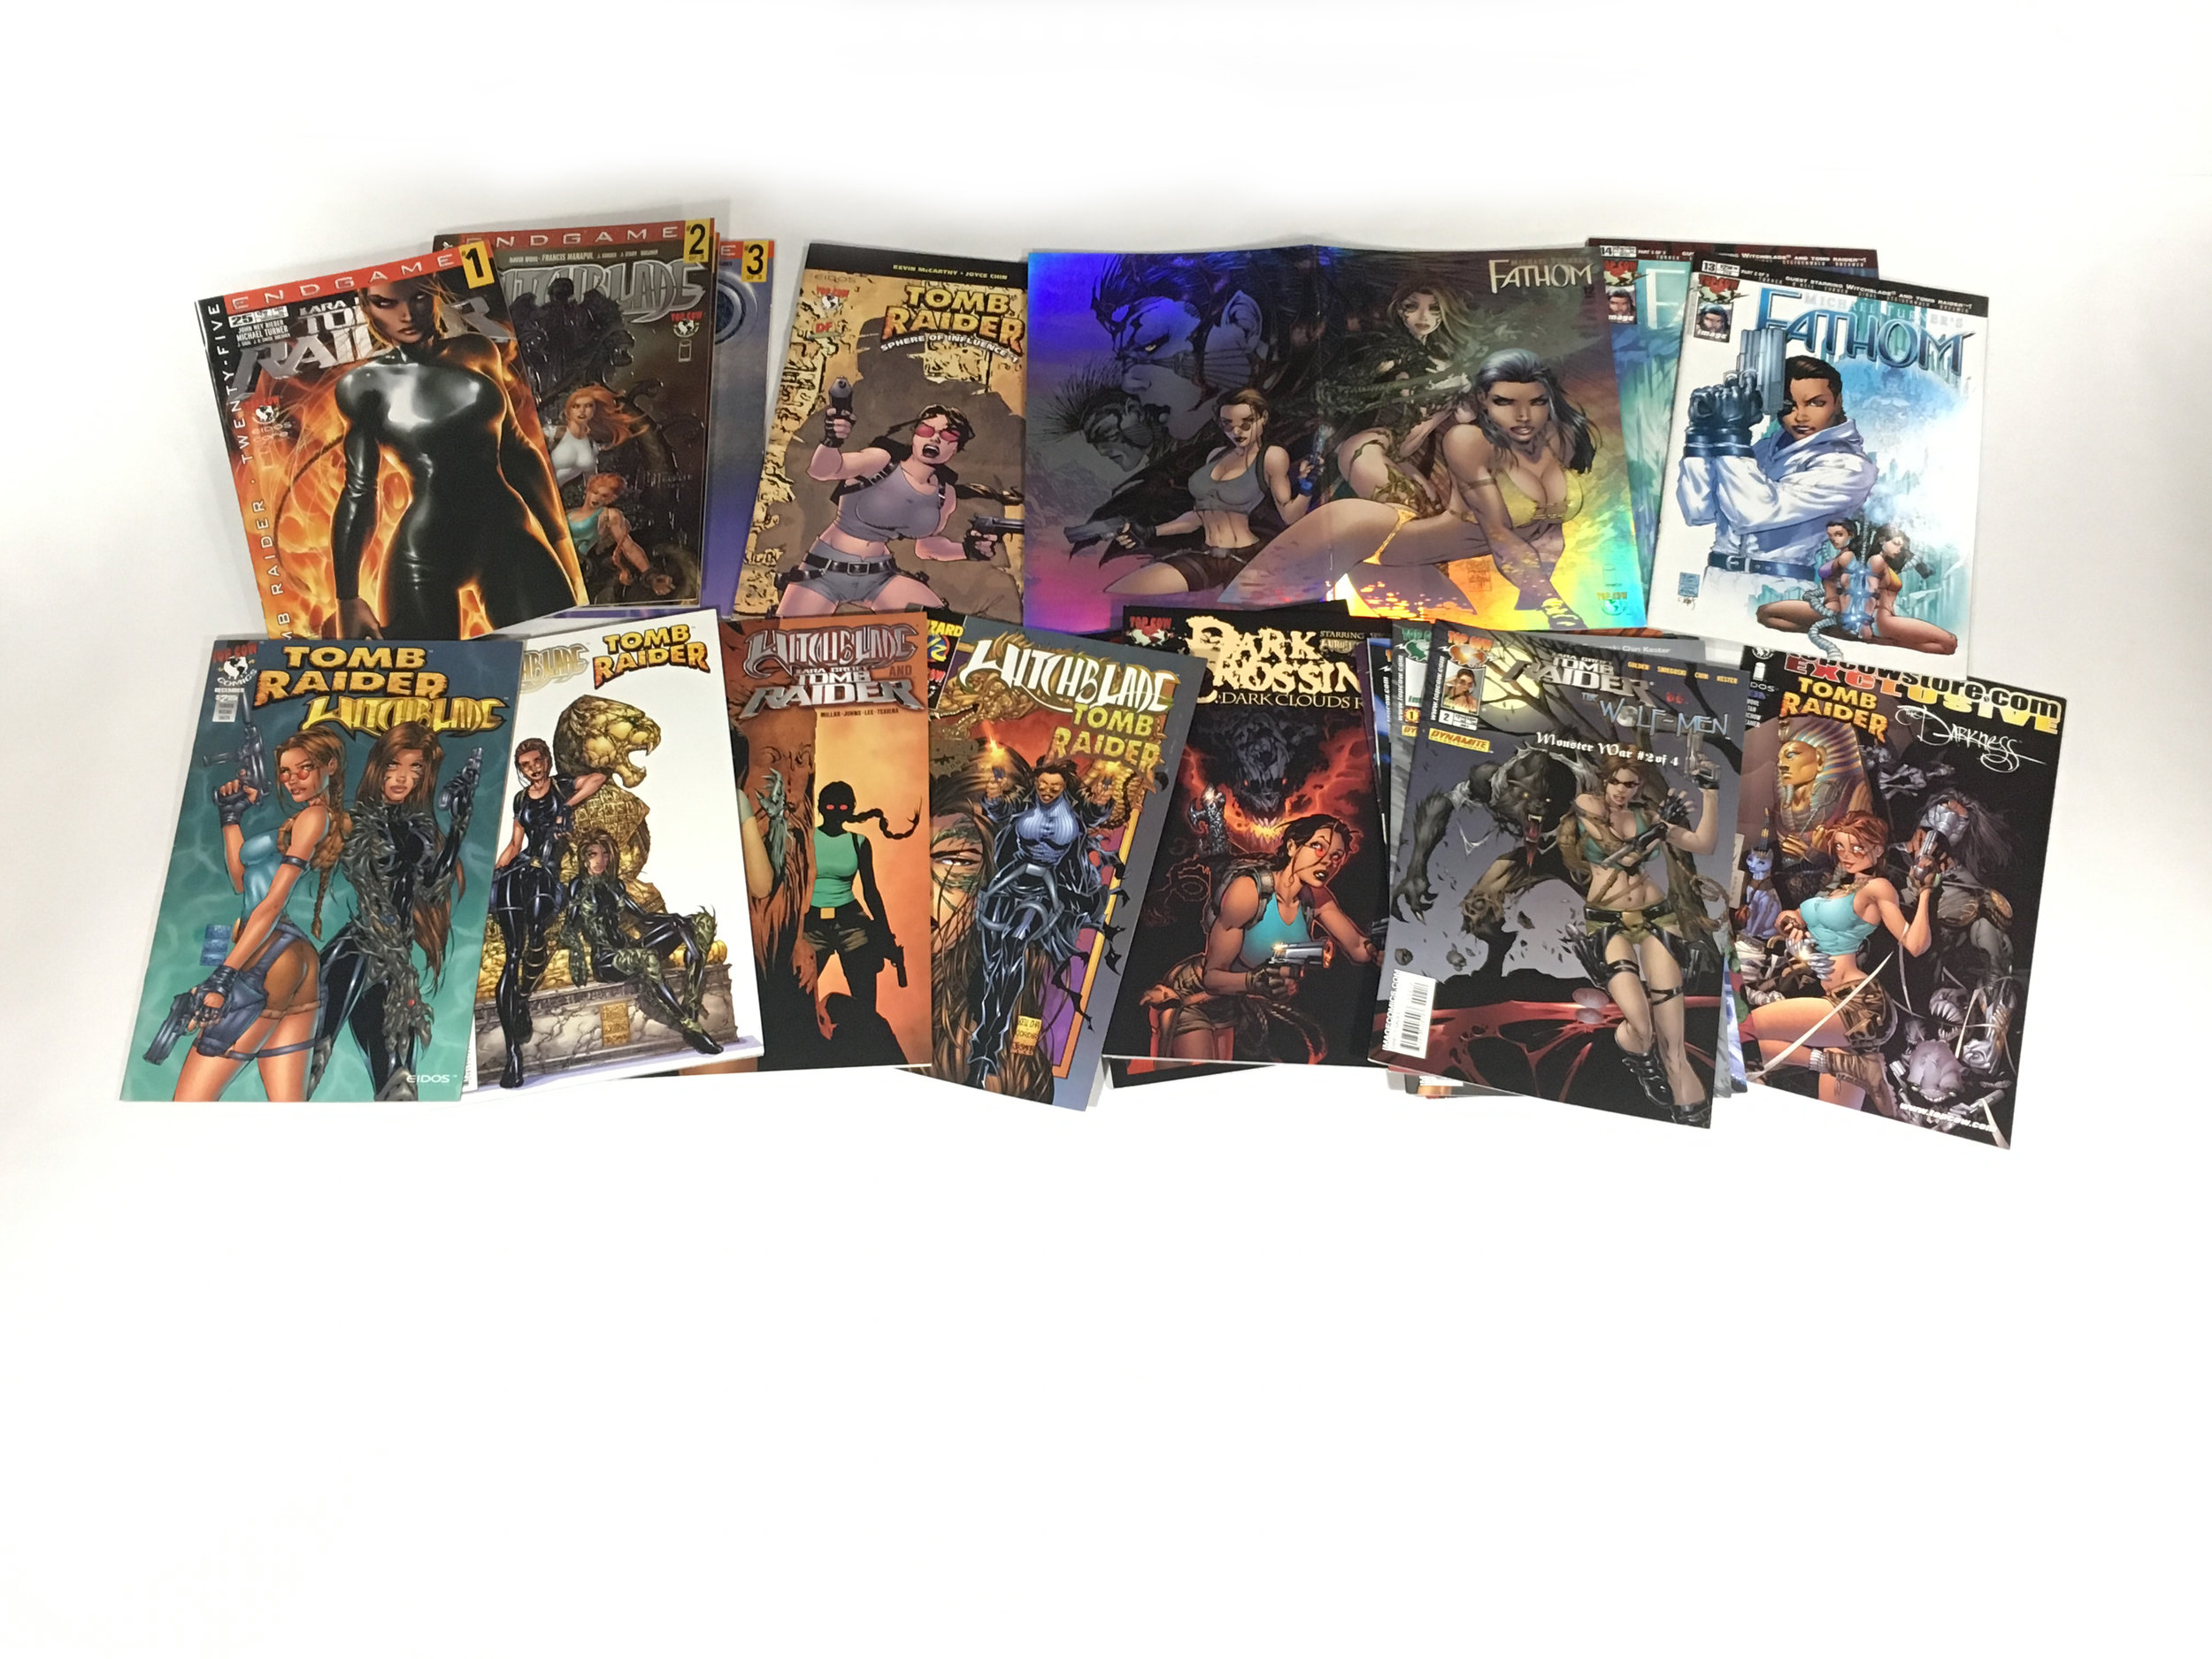 Top Cow came out with a dozen or so comics that could not be collected into a Library edition volume due to their crossovers with other various intellectual properties. That being the case, I submit to collecting paperback issues. However, if there's an opportunity to get a foil cover… sure.